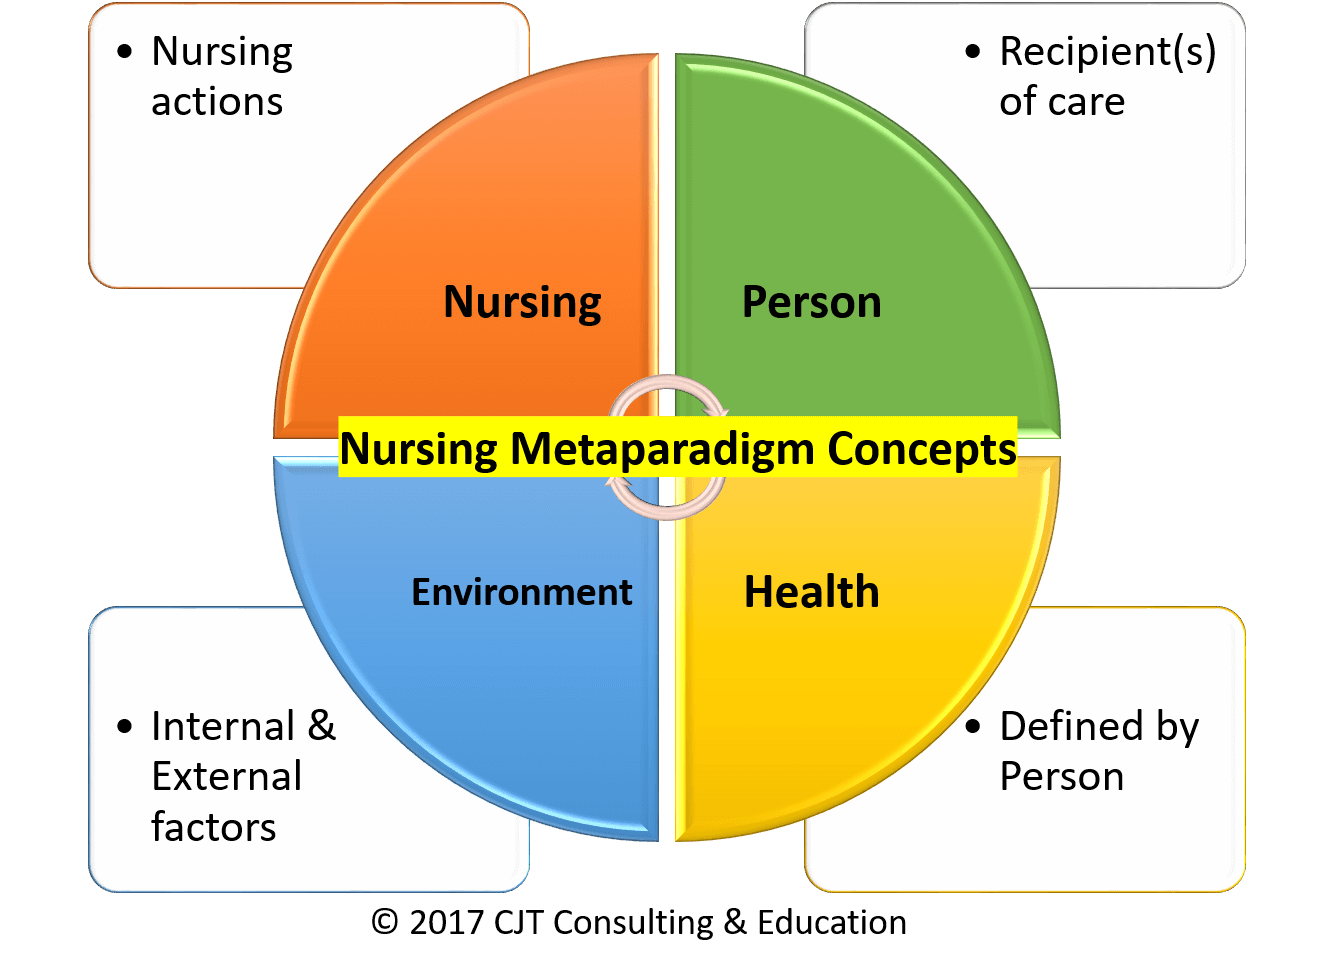 metaparadigm studies of nursing